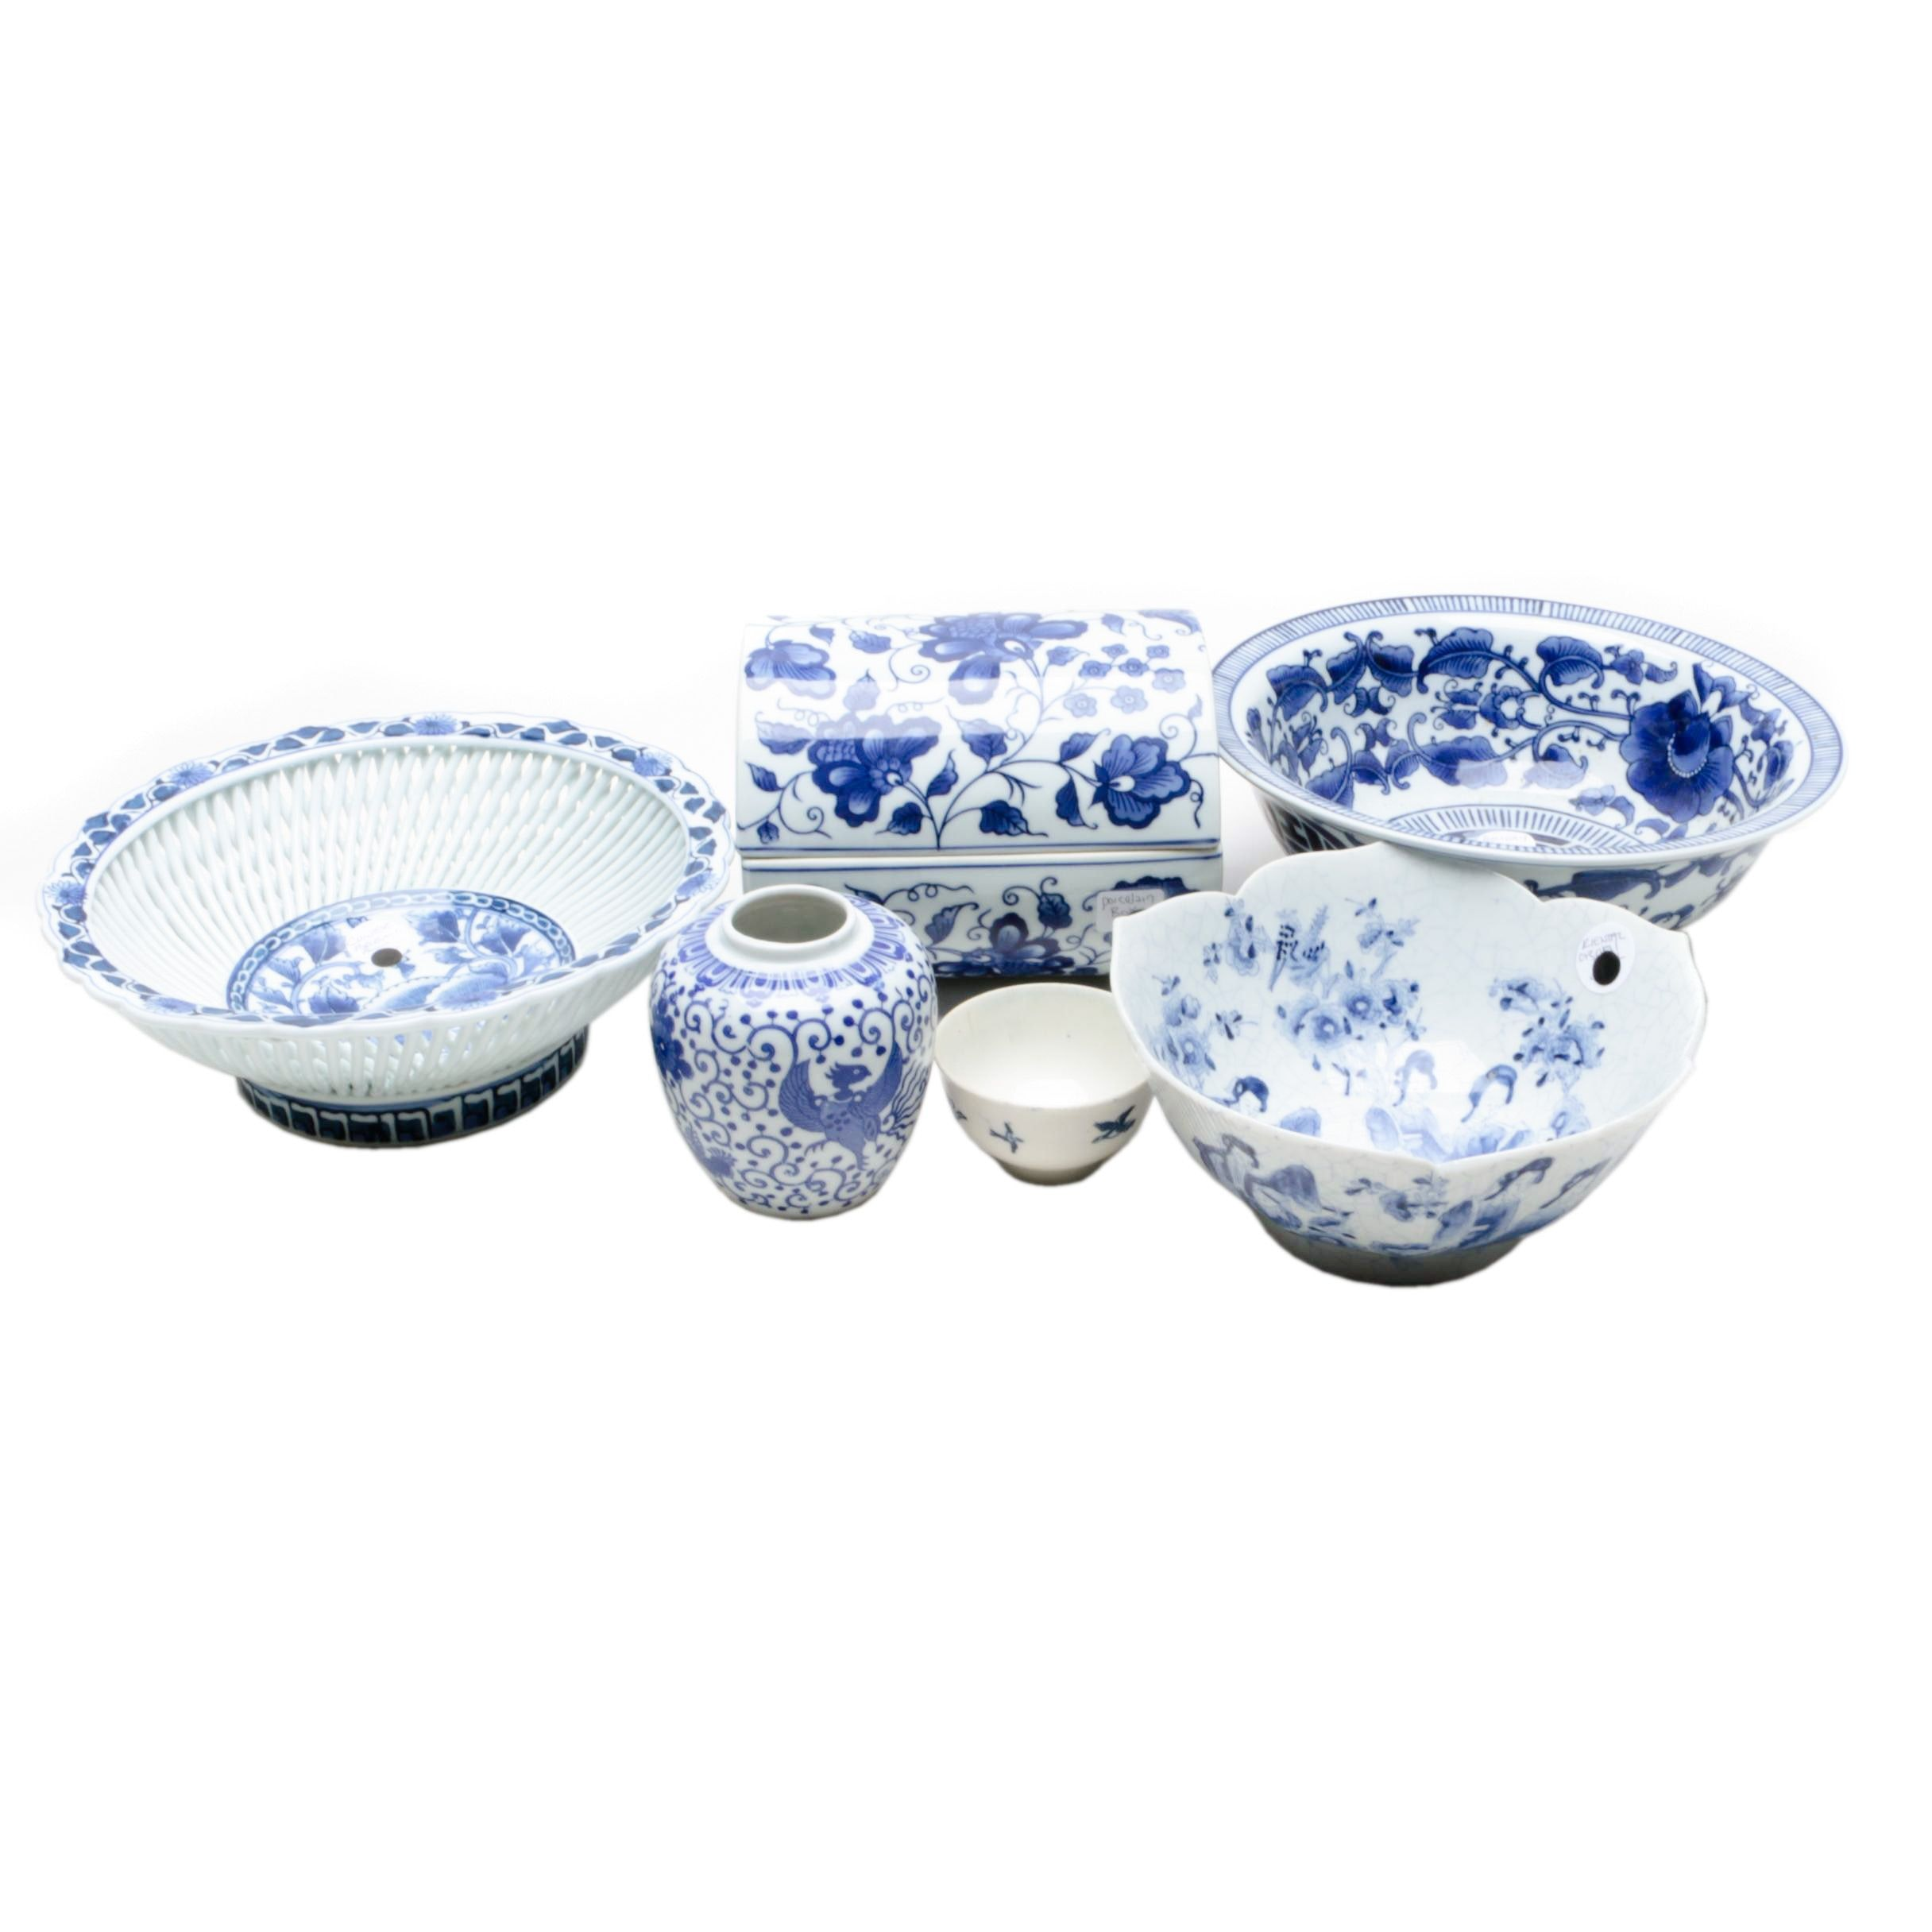 Blue and White Tableware Vase and Box